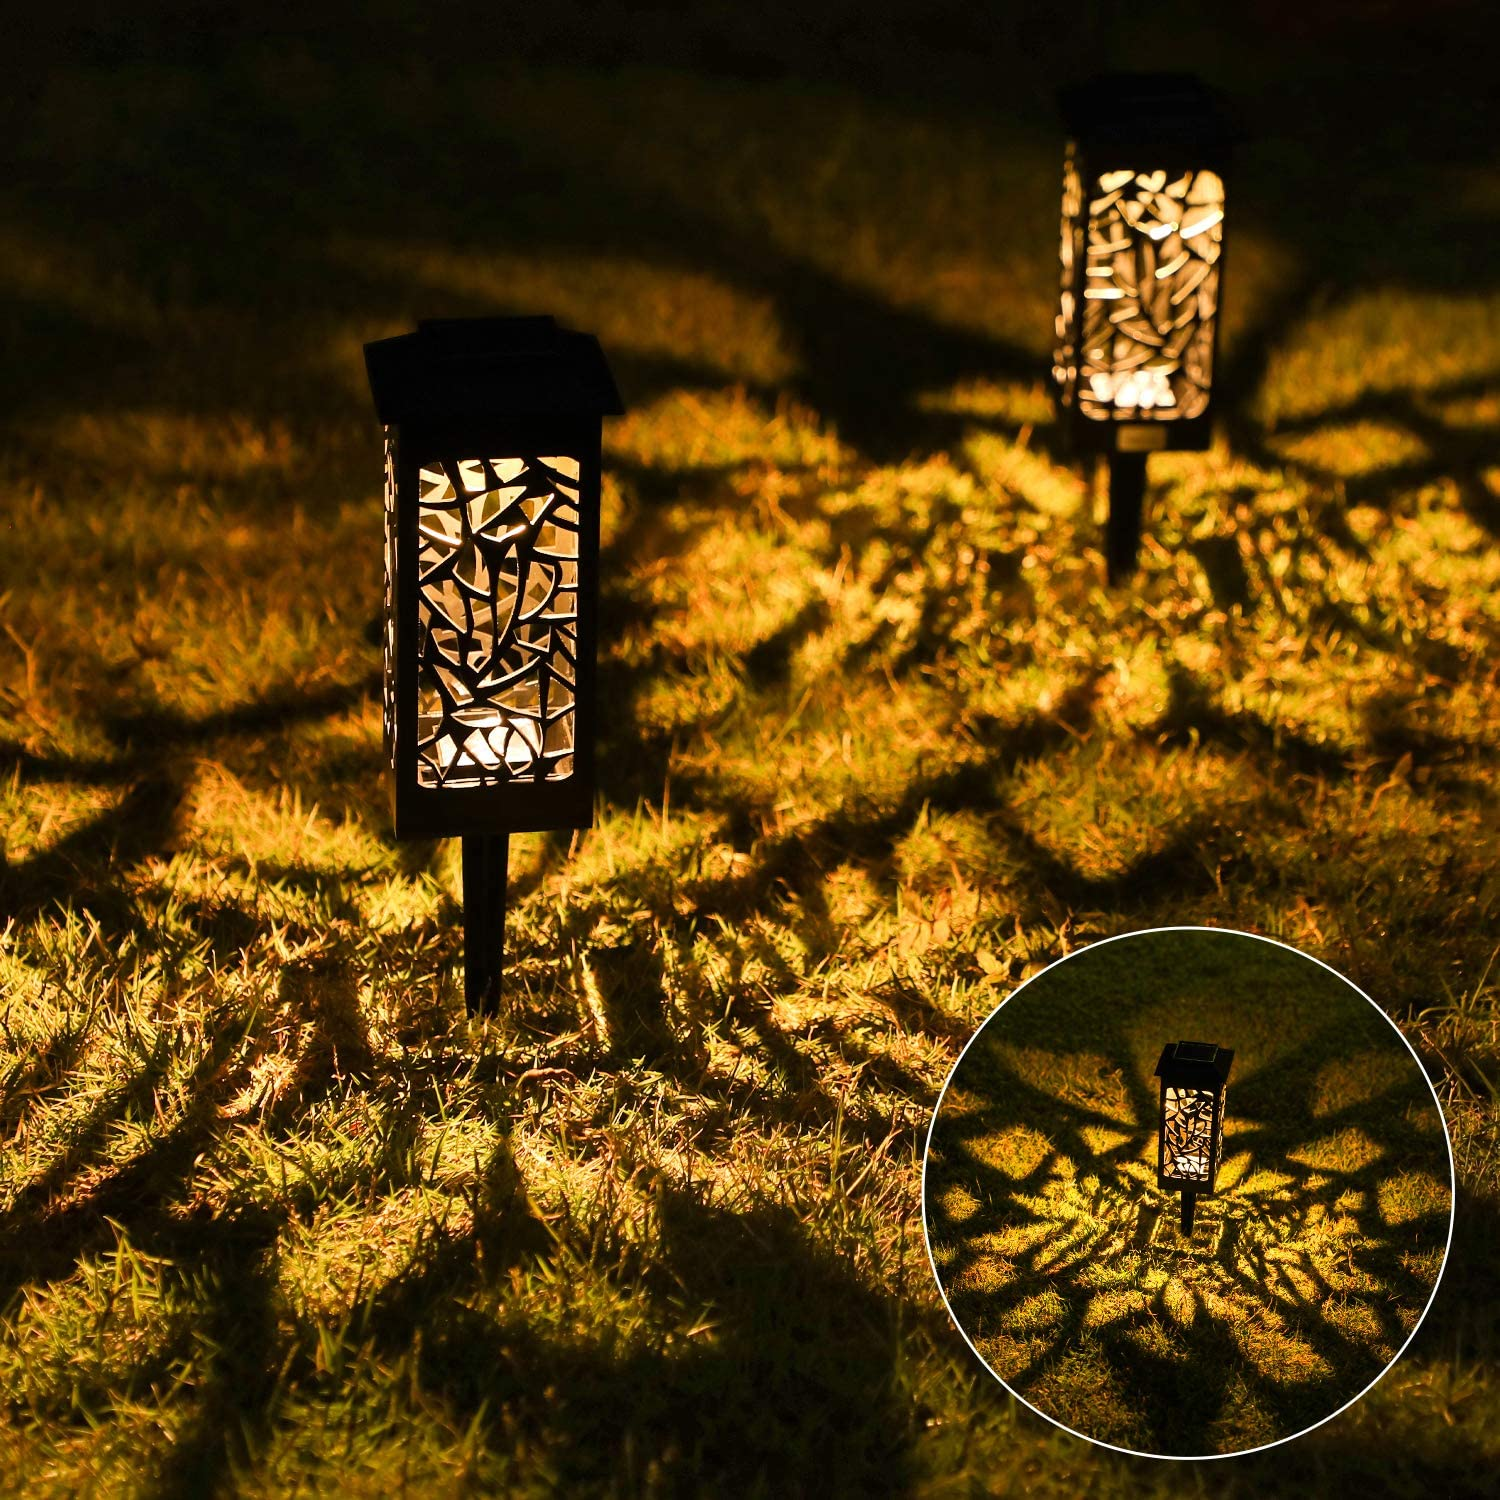 8 Pack Solar Path Lights Outdoor, OxyLED Auto On/Off LED Decorative Landscape Lighting Solar Powered, Waterproof Solar Garden Stake Lights for Yard Patio Lawn Backyard Pathway Driveway Walkway